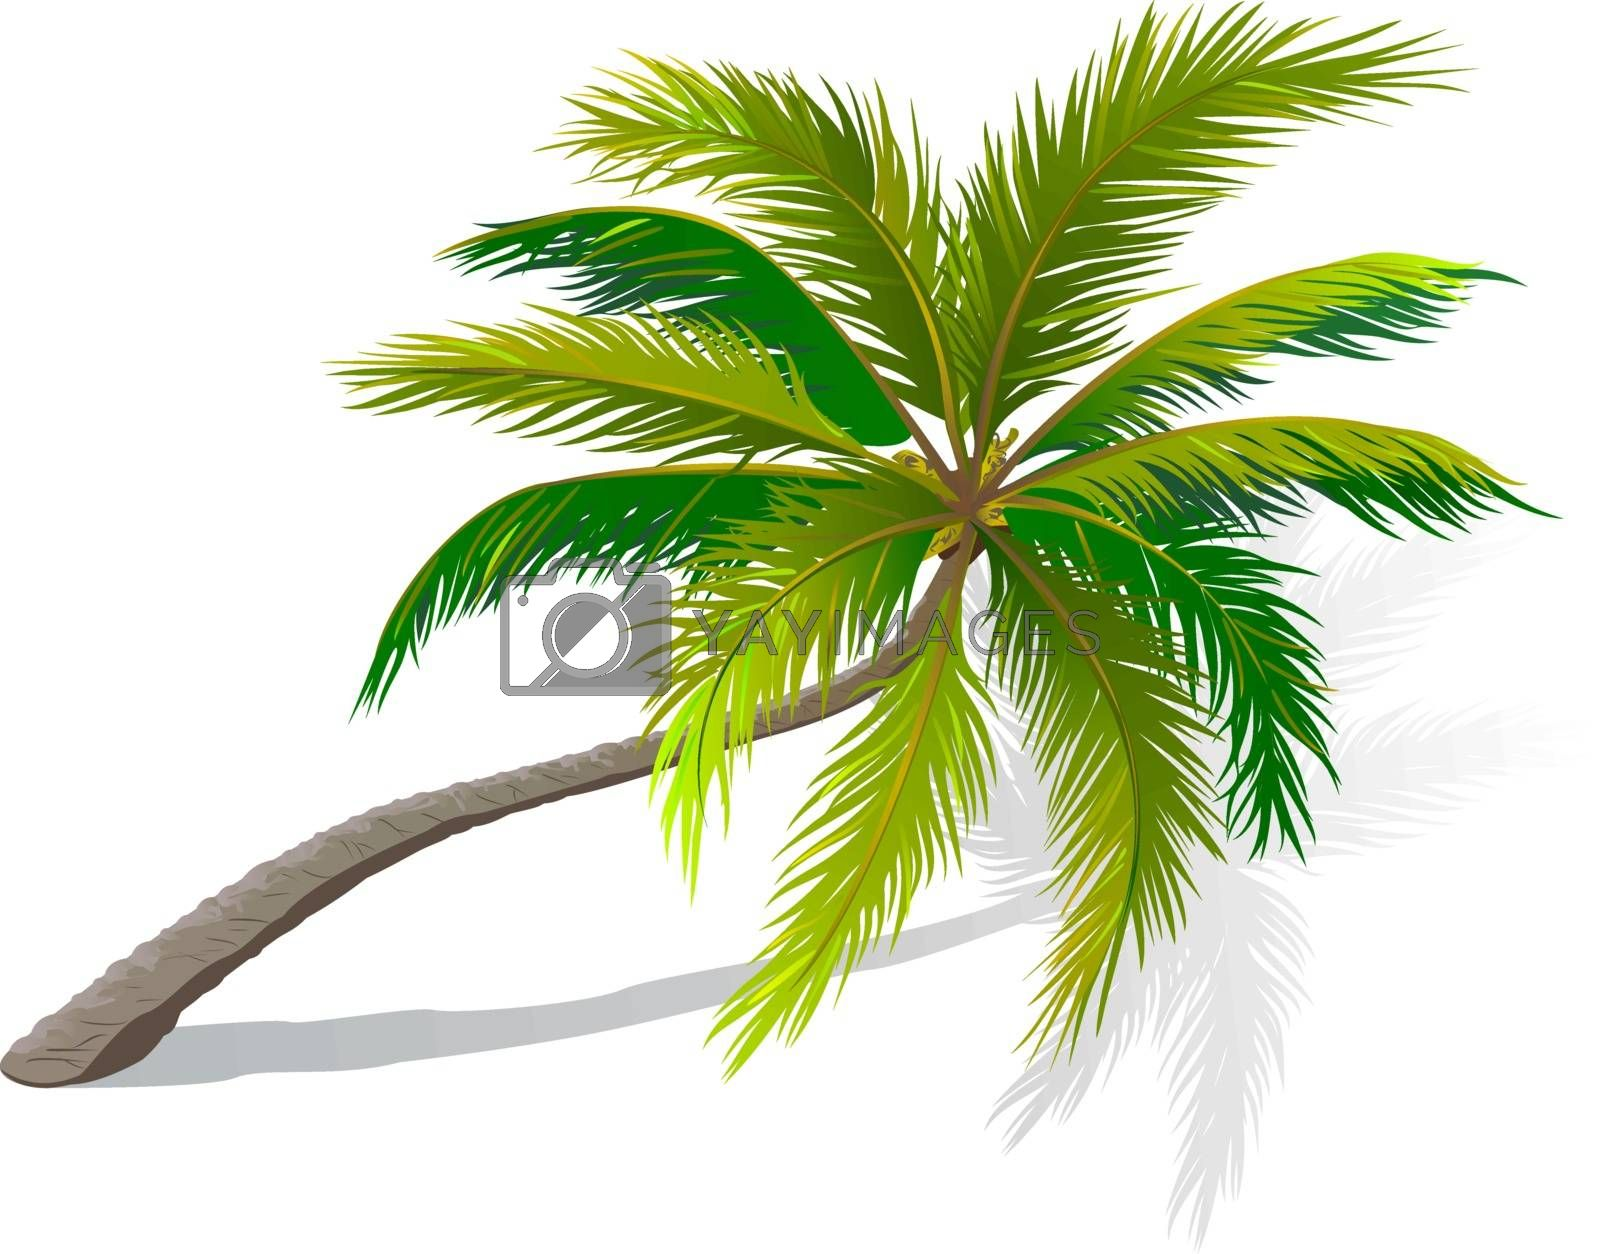 Curved palm tree by liolle